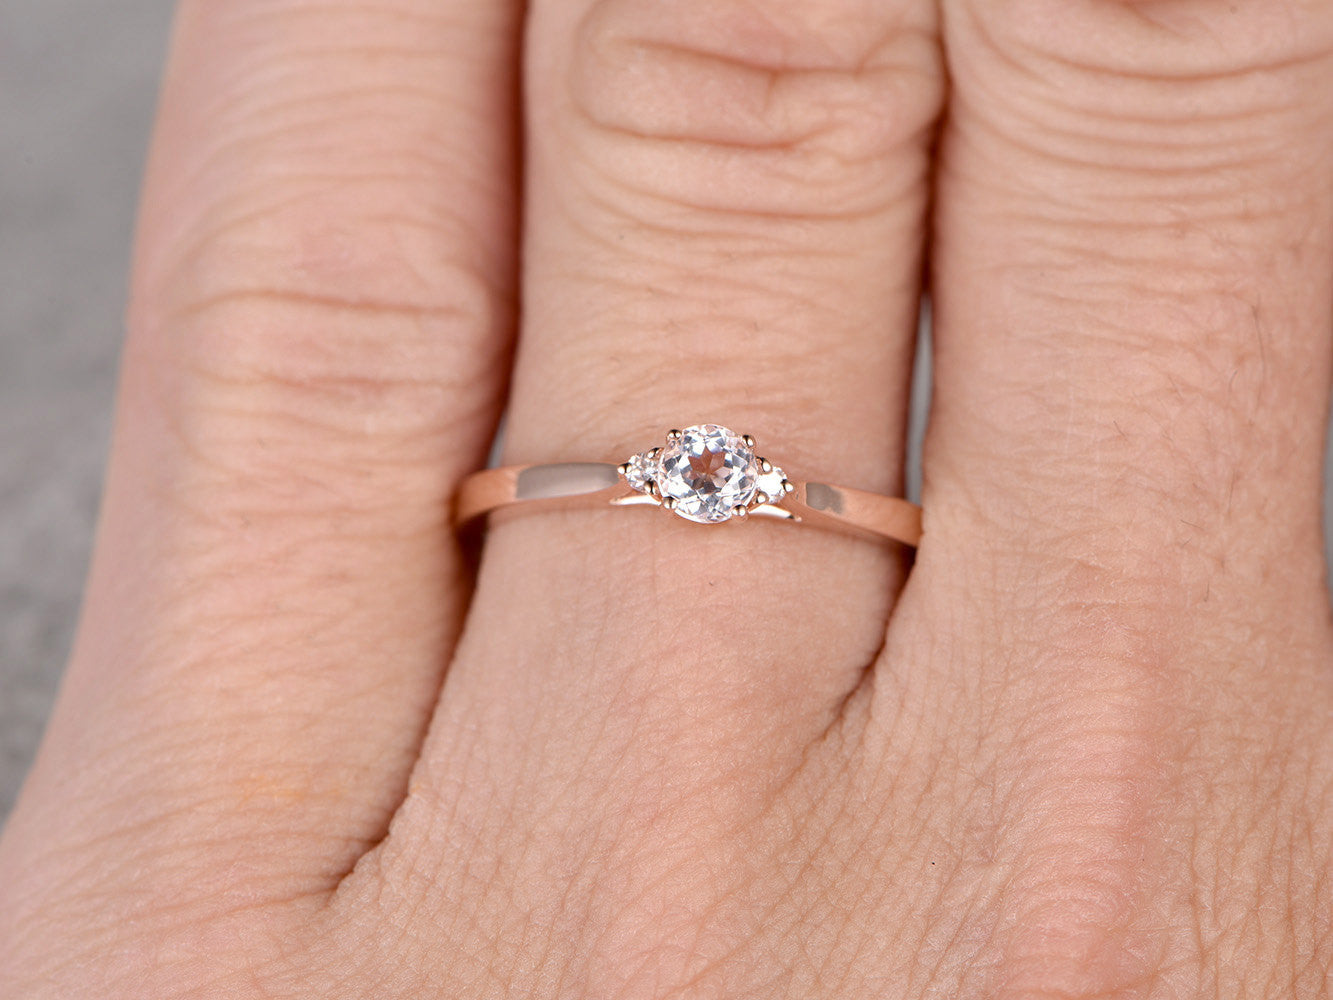 3 stones Morganite Engagement ring Rose gold,Diamond wedding band,14k,5mm Round Cut,Gemstone Promise Bridal Ring,Plain gold matching band